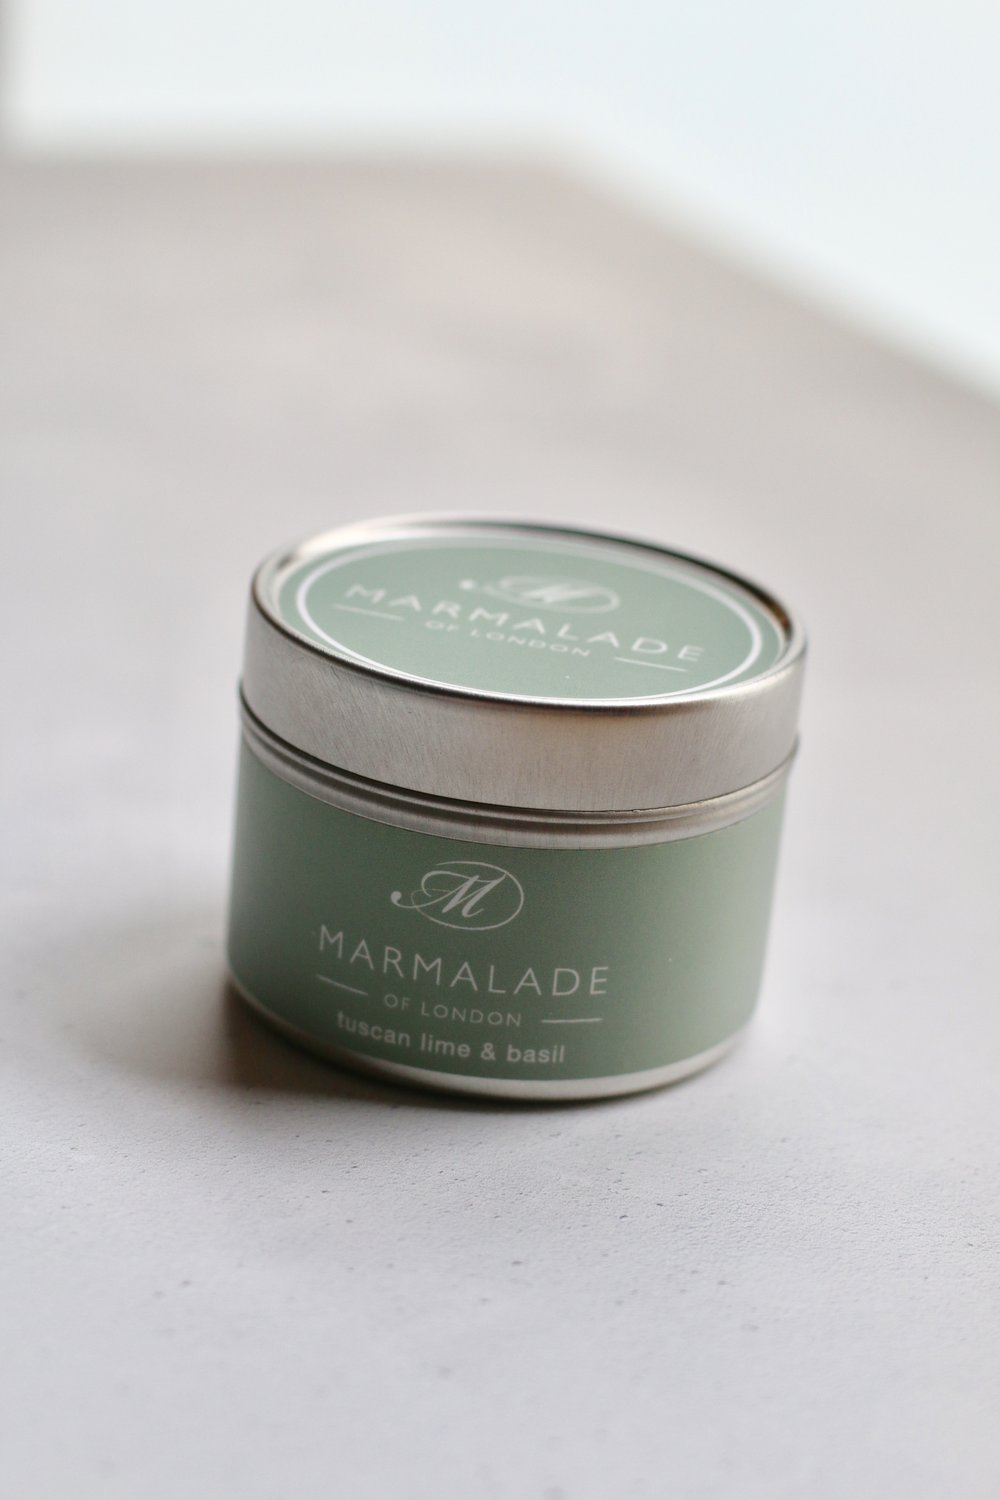 Marmalade of LondonCandles Review - HAND POURED AFFORDABLE LUXURYMarmalade of London is a British brand that creates a little indulgent luxury for every home. They have a passion for fragrance and design which is seen in their contemporary packaging and design.All of their products are lovingly made in Britain and their candles are 100% soy wax with cotton wicks and essential oils.From the moment you lift the lid on one of these wonderful candles, the room is filled with distinct scents, that can cut through even the most stuffiest of atmospheres. Marmalade's Tuscan Lime and Basil scent has some seriously sharp citrus tones, perfect for any overriding any kitchen smells. But with the earthy undertones of Basil, this scent is mellow enough for any relaxed evening with a glass of something fizzy.Perfect for: the kitchen, conservatories, relaxing in the living room, or even use outdoors...to keep those bugs away?